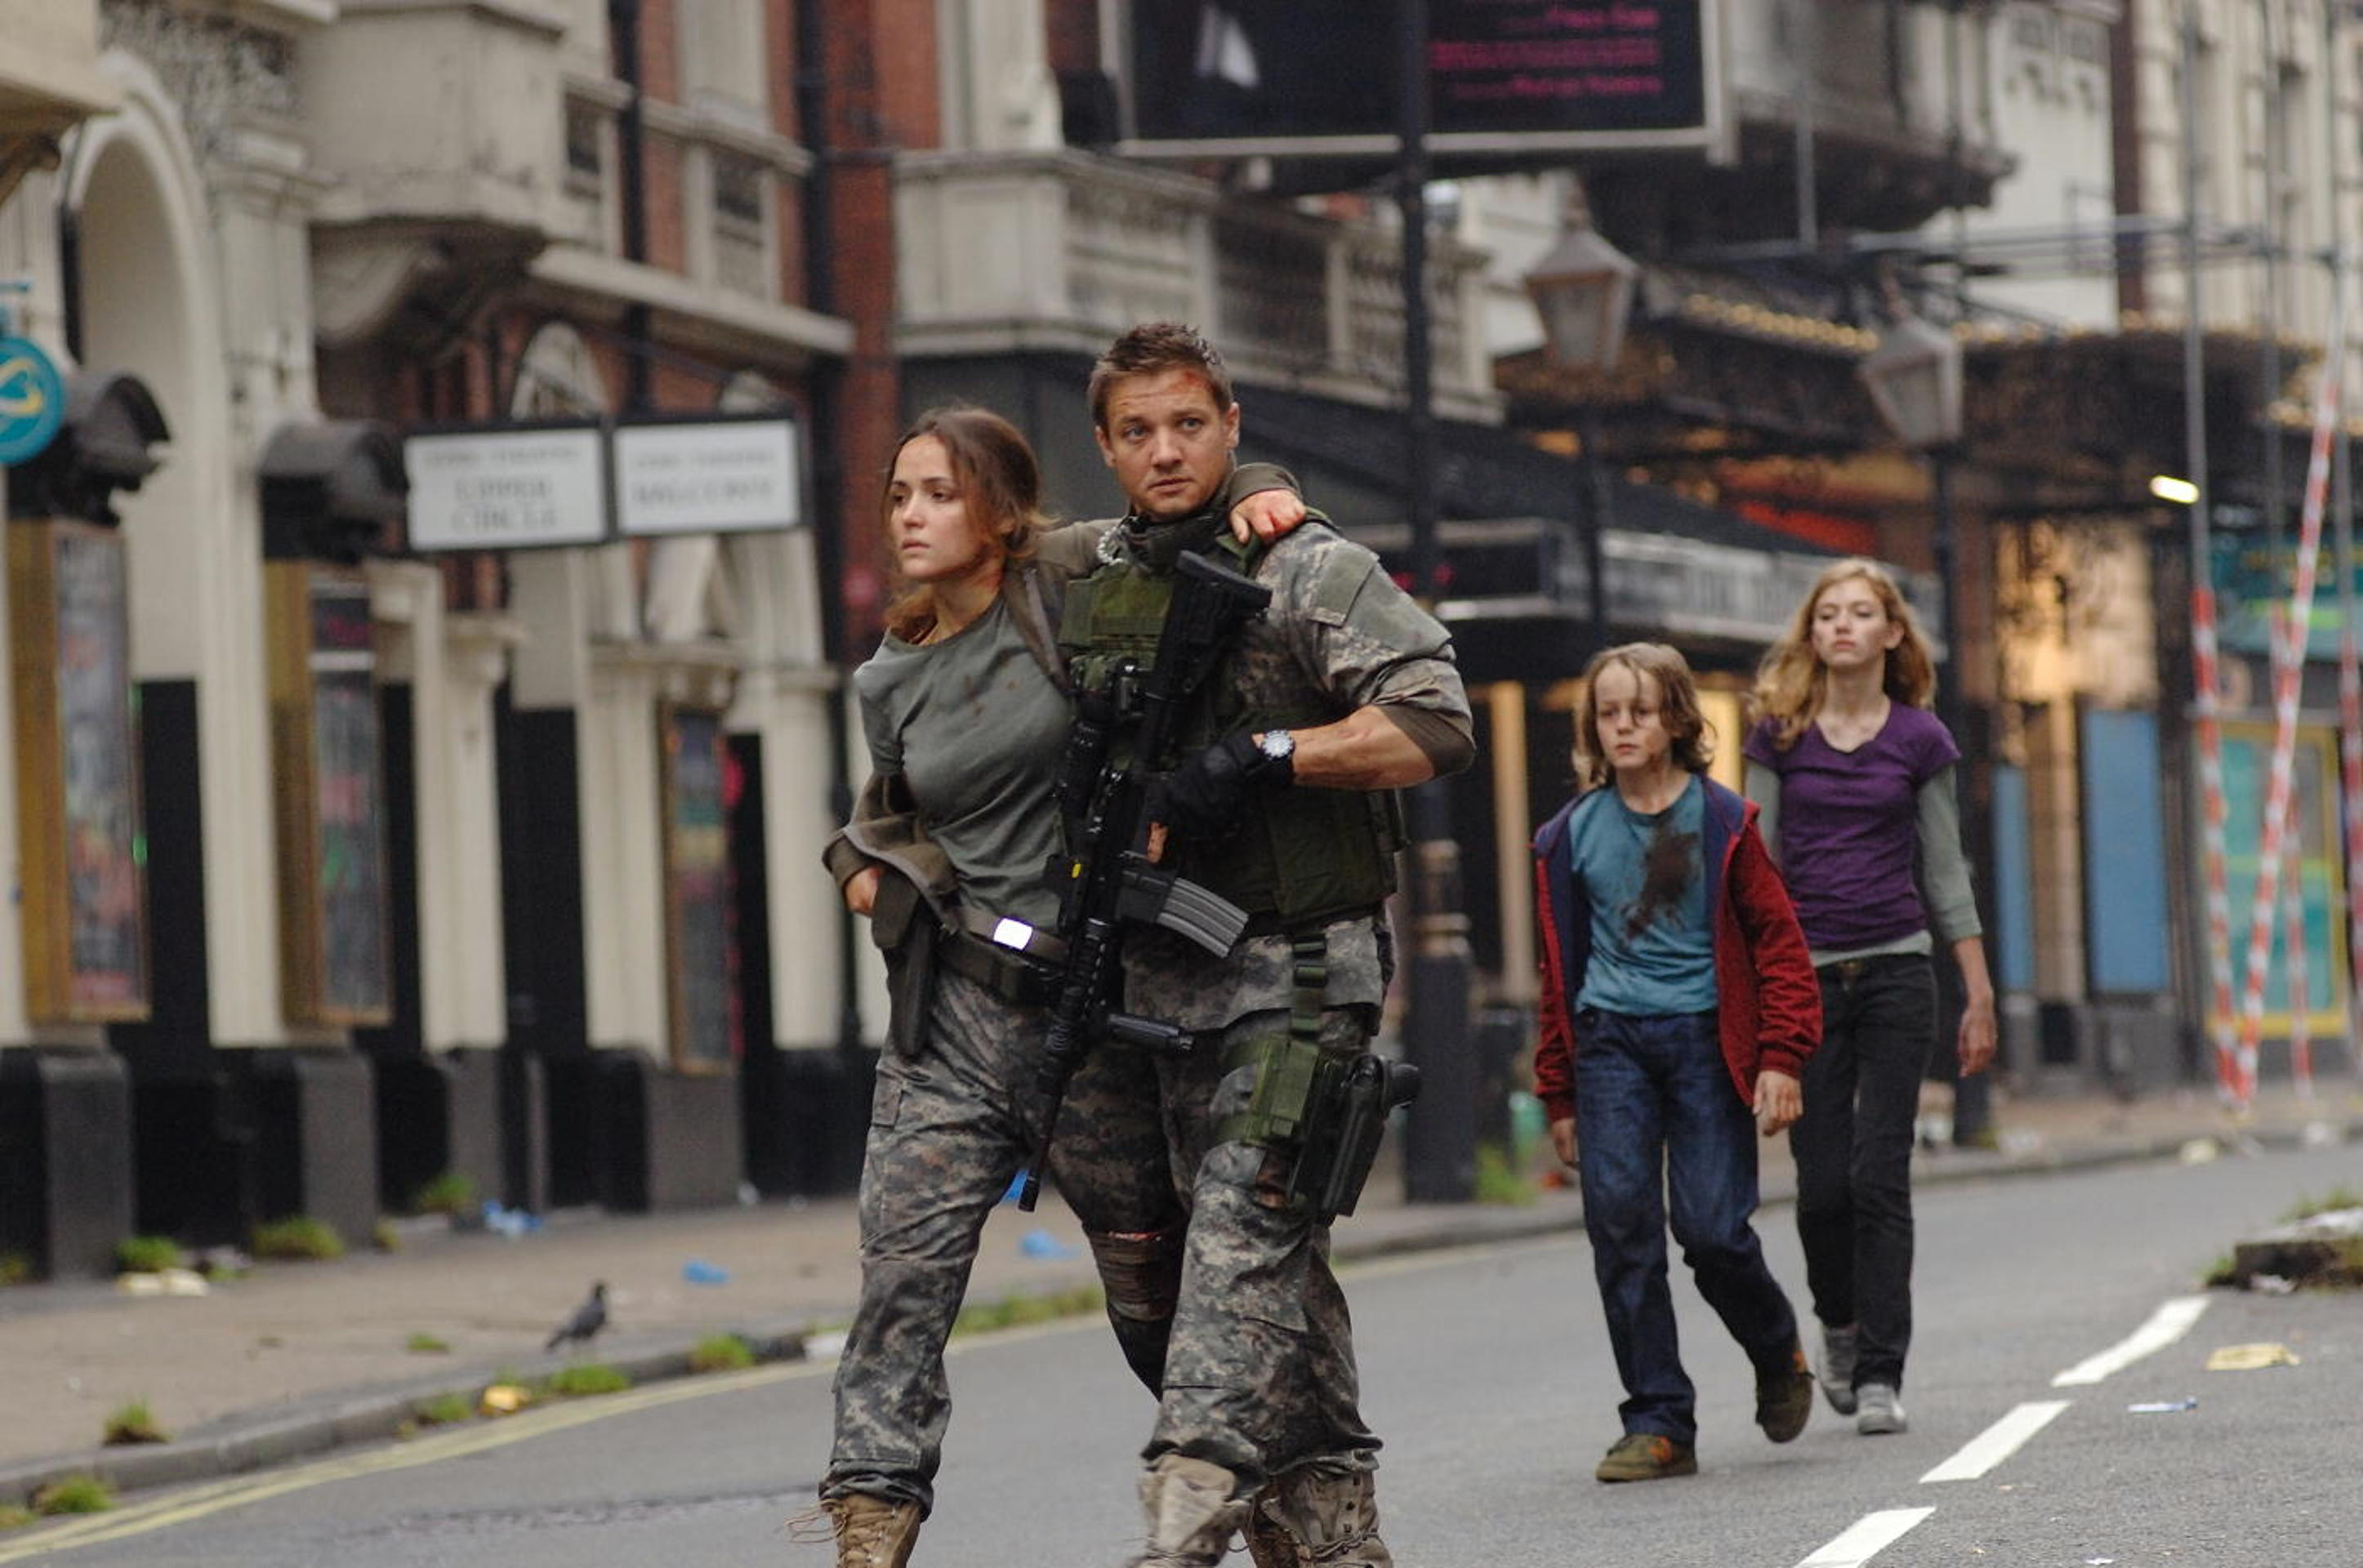 Rose Byrne, Jeremy Renner, Mackintosh Muggleton, Imogen Poots in 28 Weeks Later (2007)